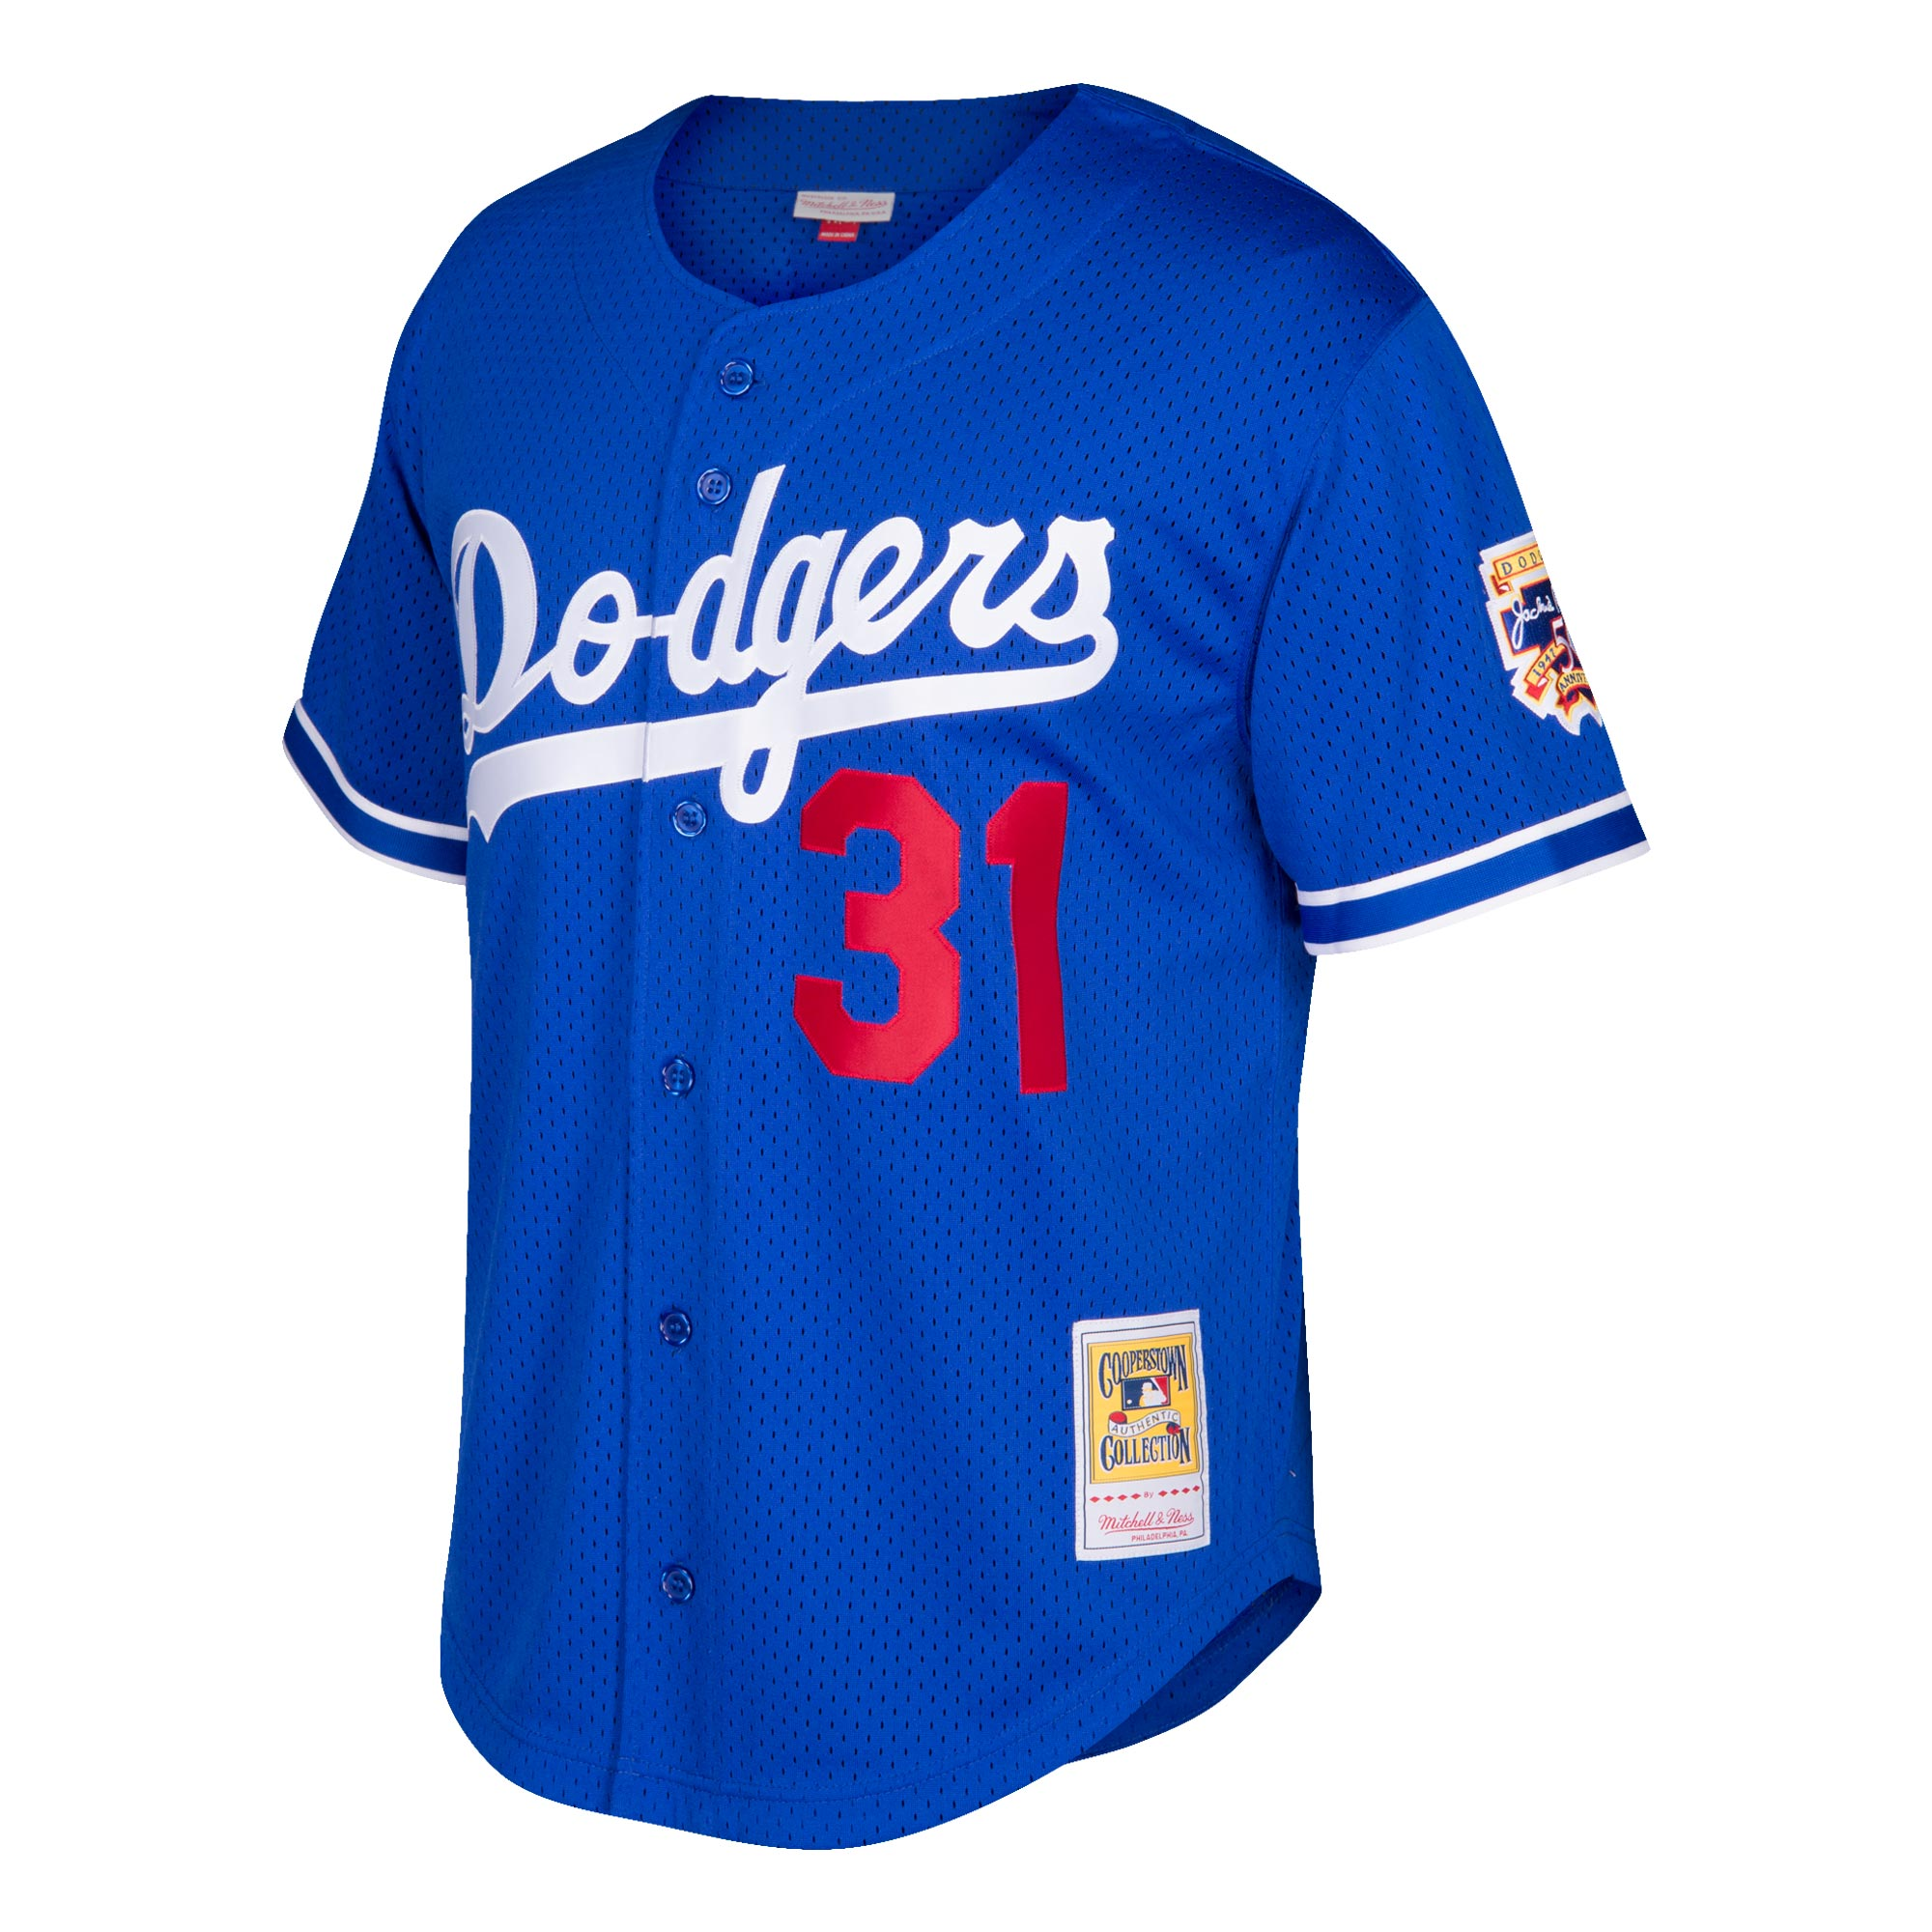 2c64972a297 Mike Piazza Los Angeles Dodgers Mitchell   Ness Cooperstown Collection Mesh  Batting Practice Jersey - Royal - Walmart.com